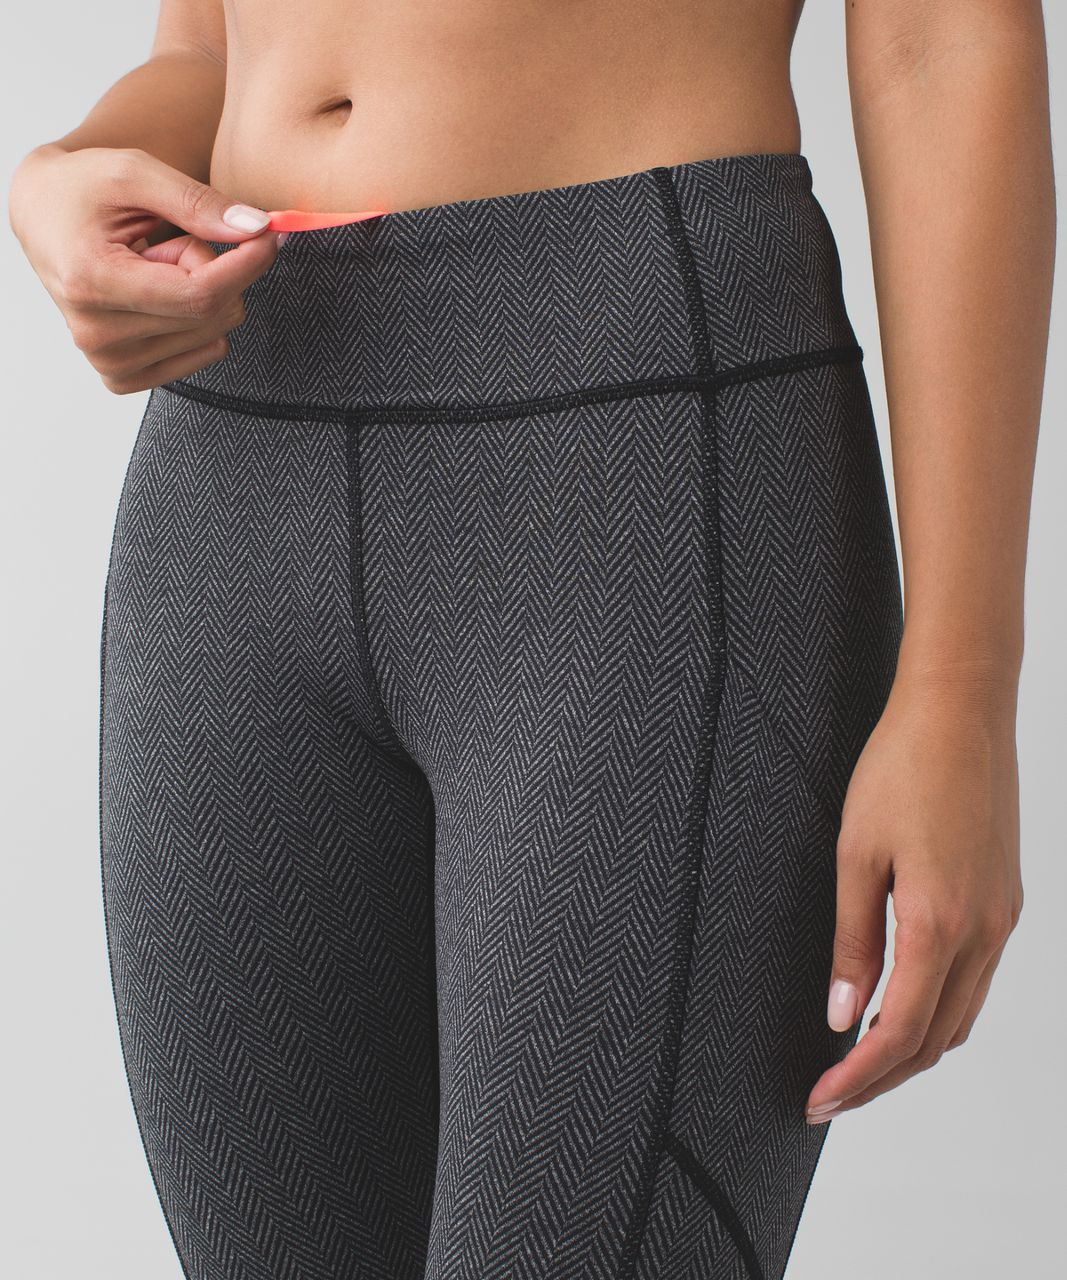 Lululemon Speed Crop - Giant Herringbone Black Heathered Black